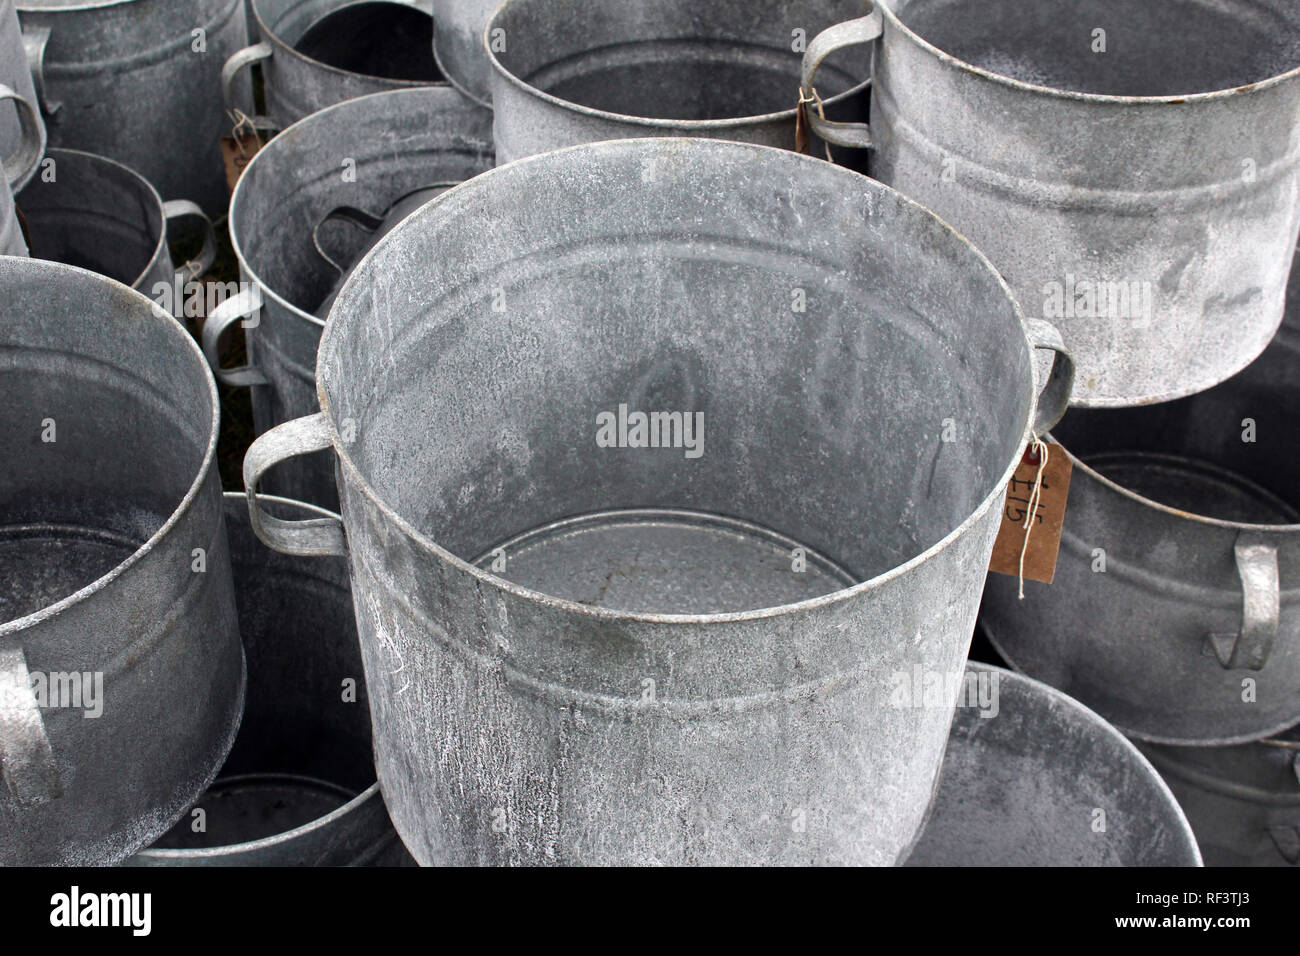 Galvanized containers - Stock Image